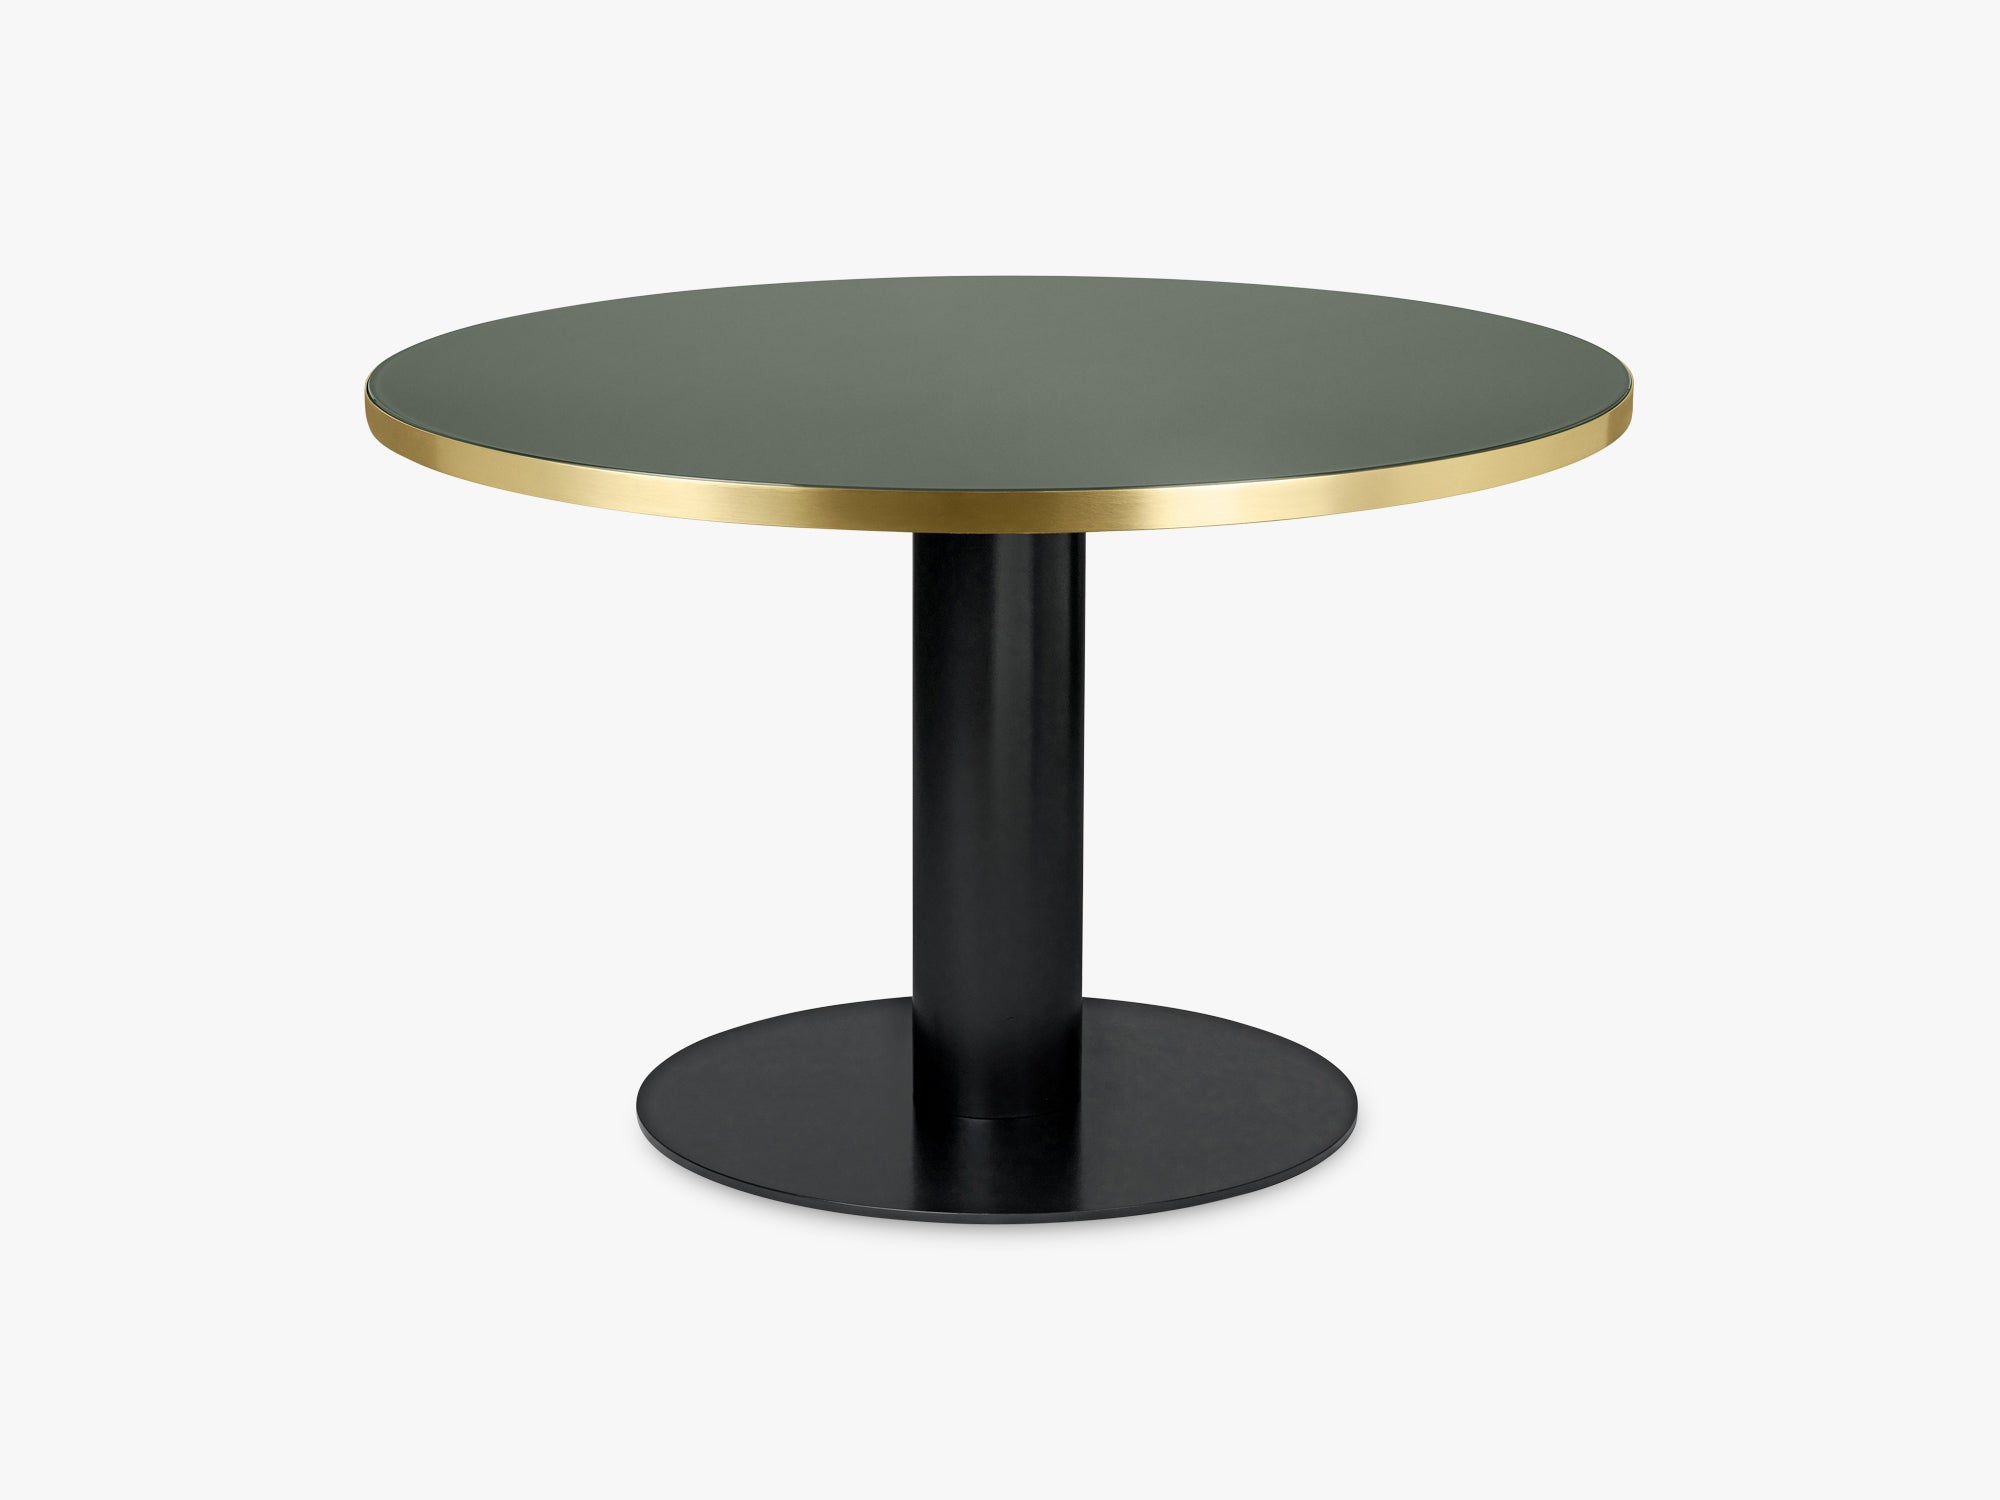 GUBI 2.0 Dining Table - Round - Ø125 - Black base, Glass Bottle Green top fra GUBI